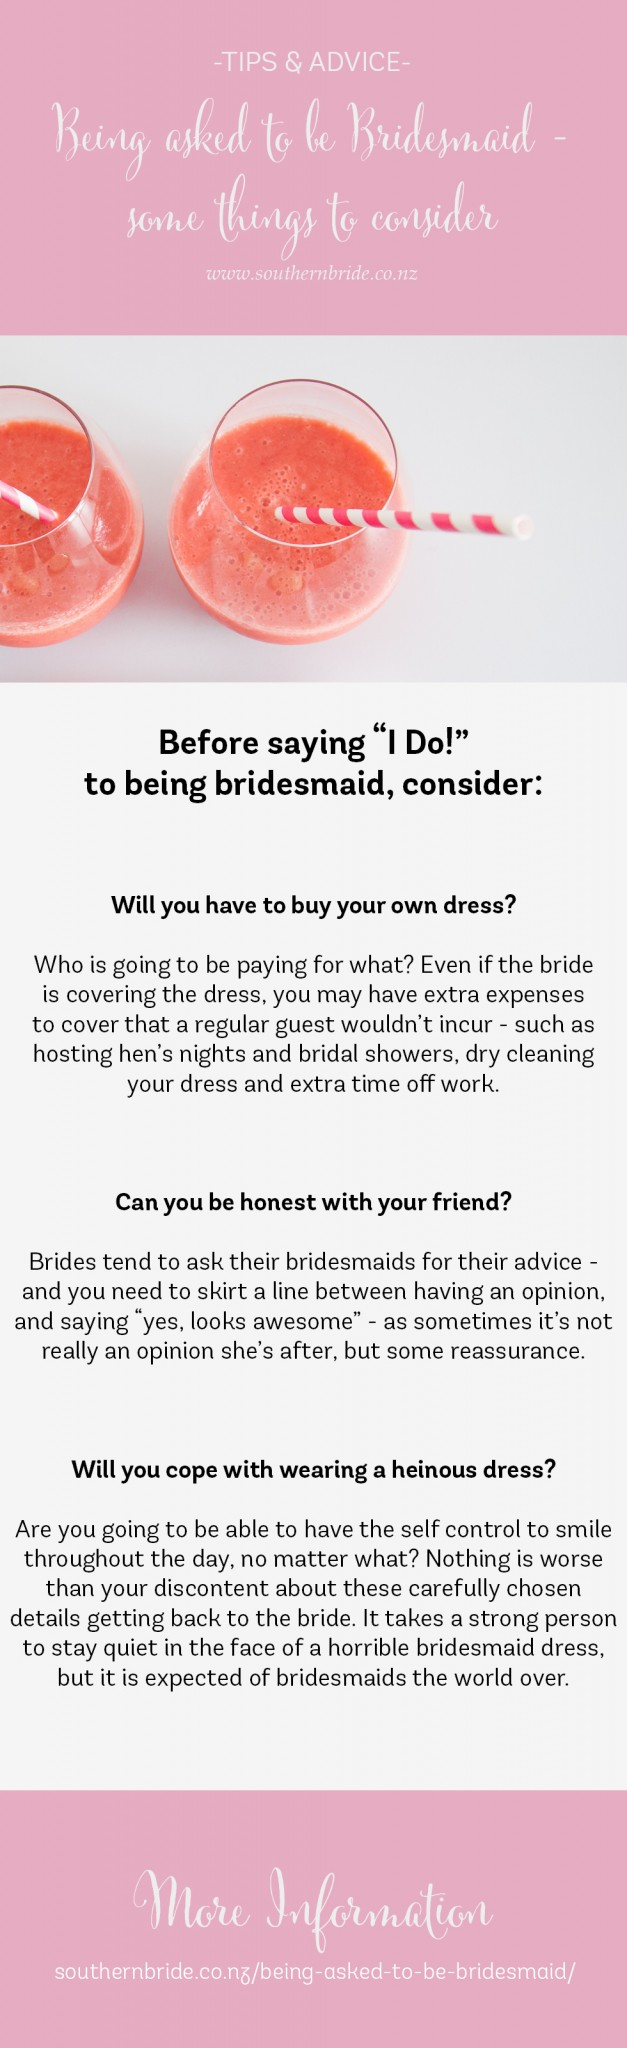 being asked to be bridesmaid